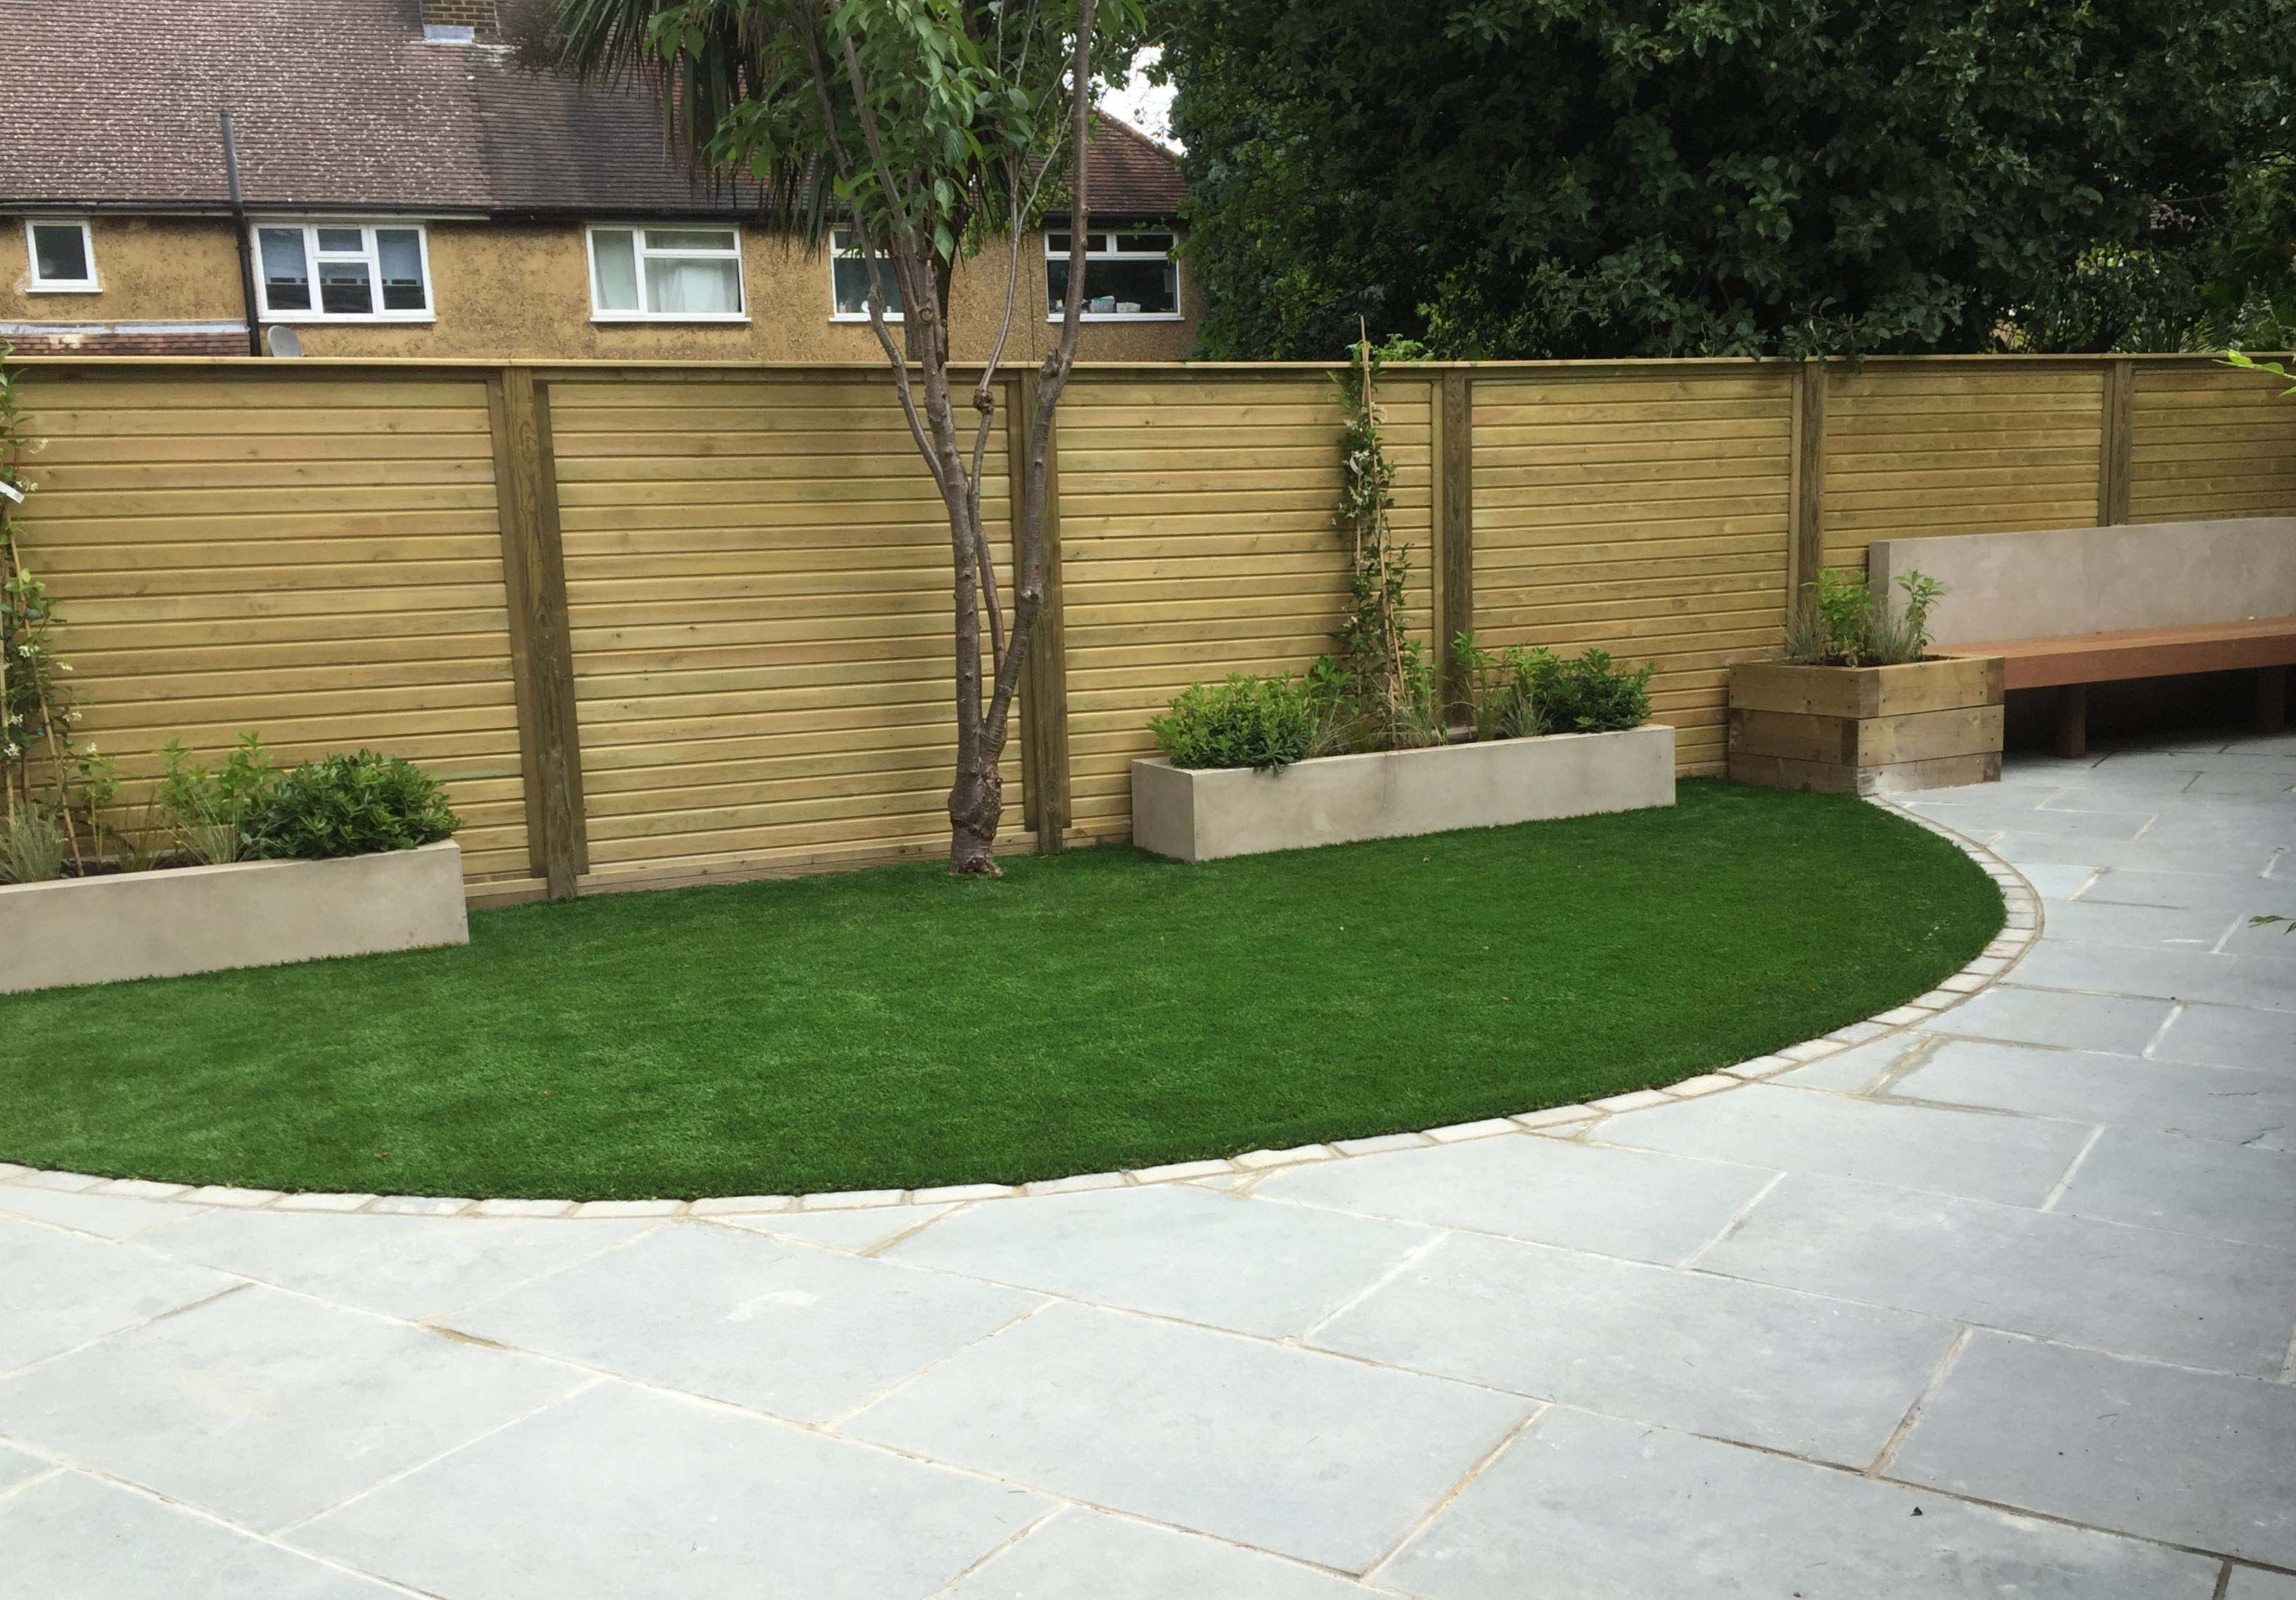 artificial grass play area with secure fence